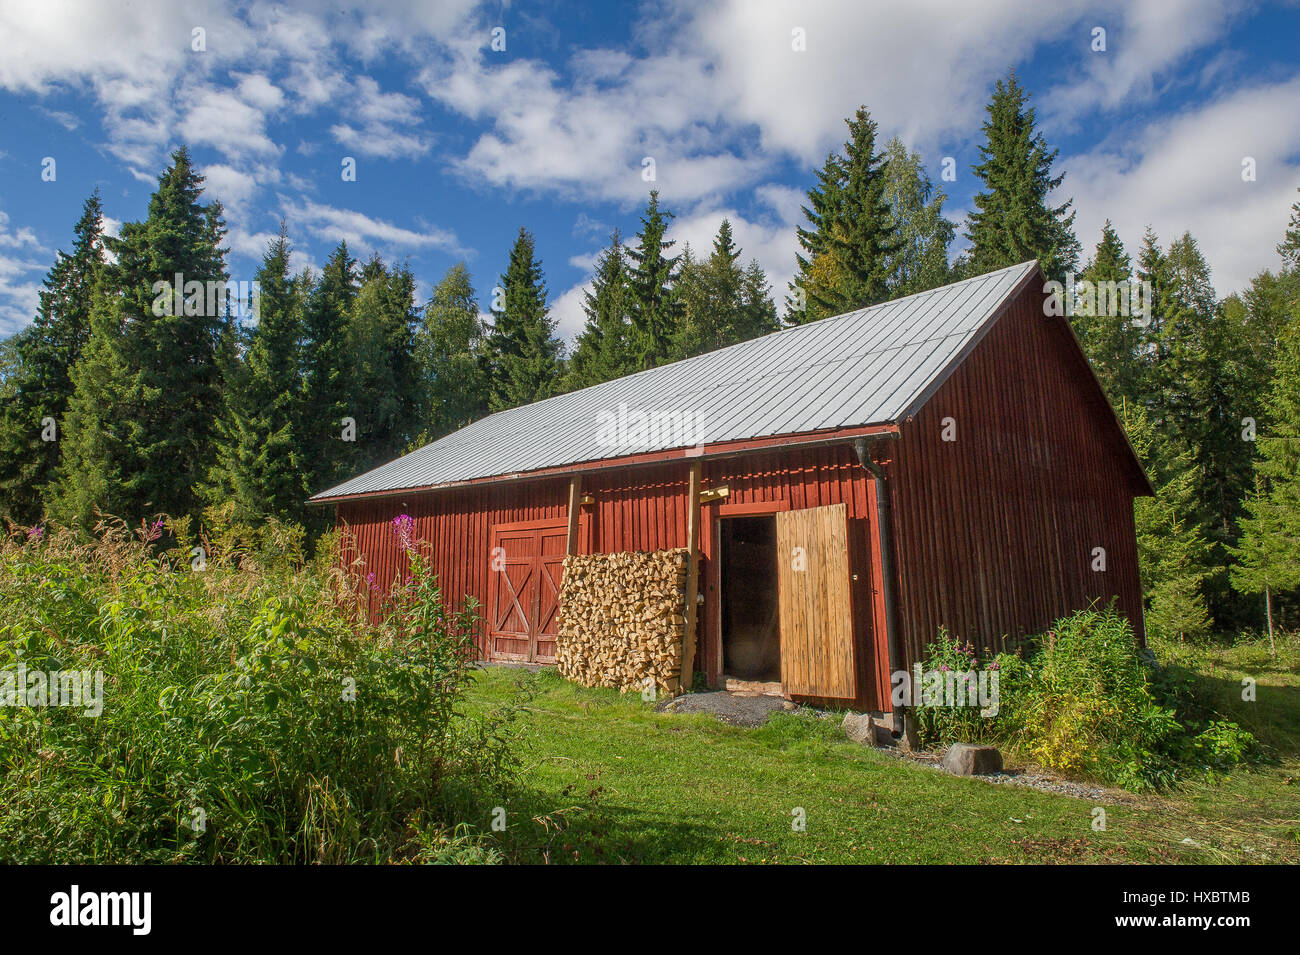 red barn in northern sweden - Stock Image